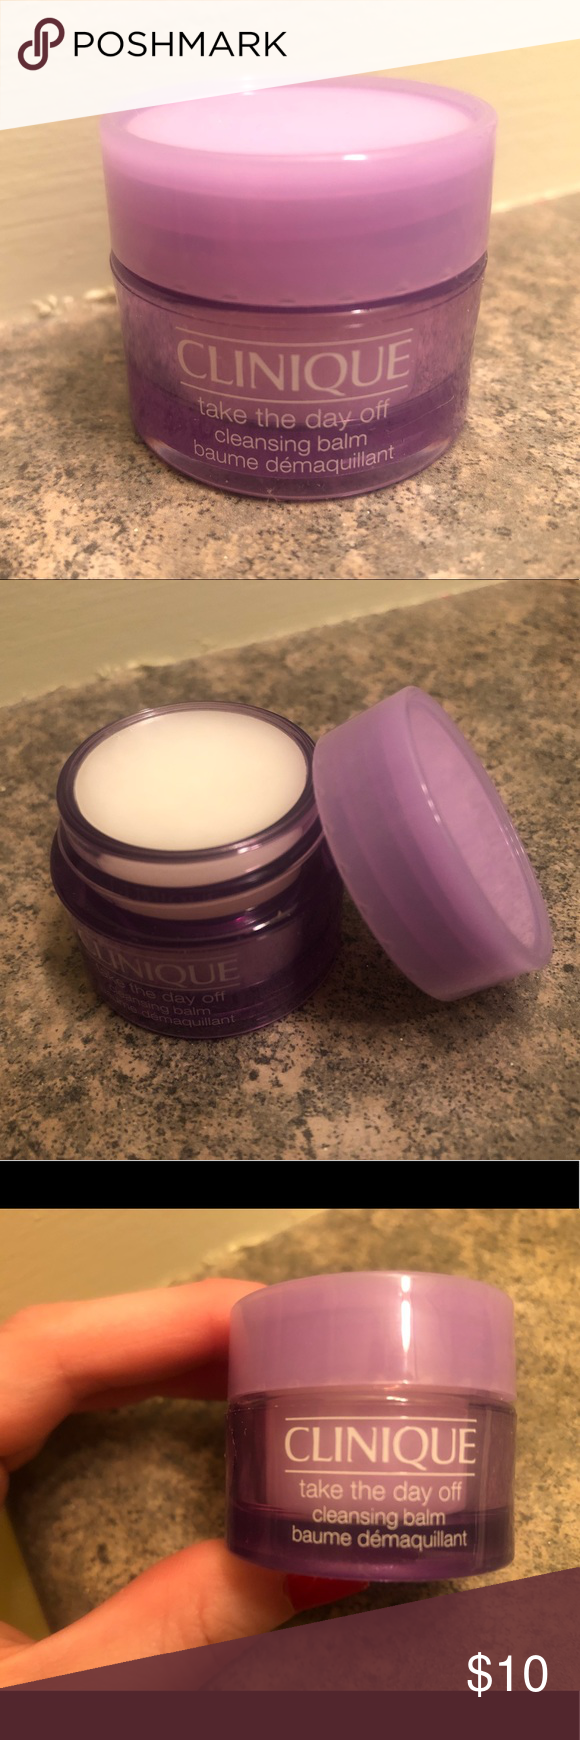 Clinique Take the Day Off Cleansing Balm remover Brand new